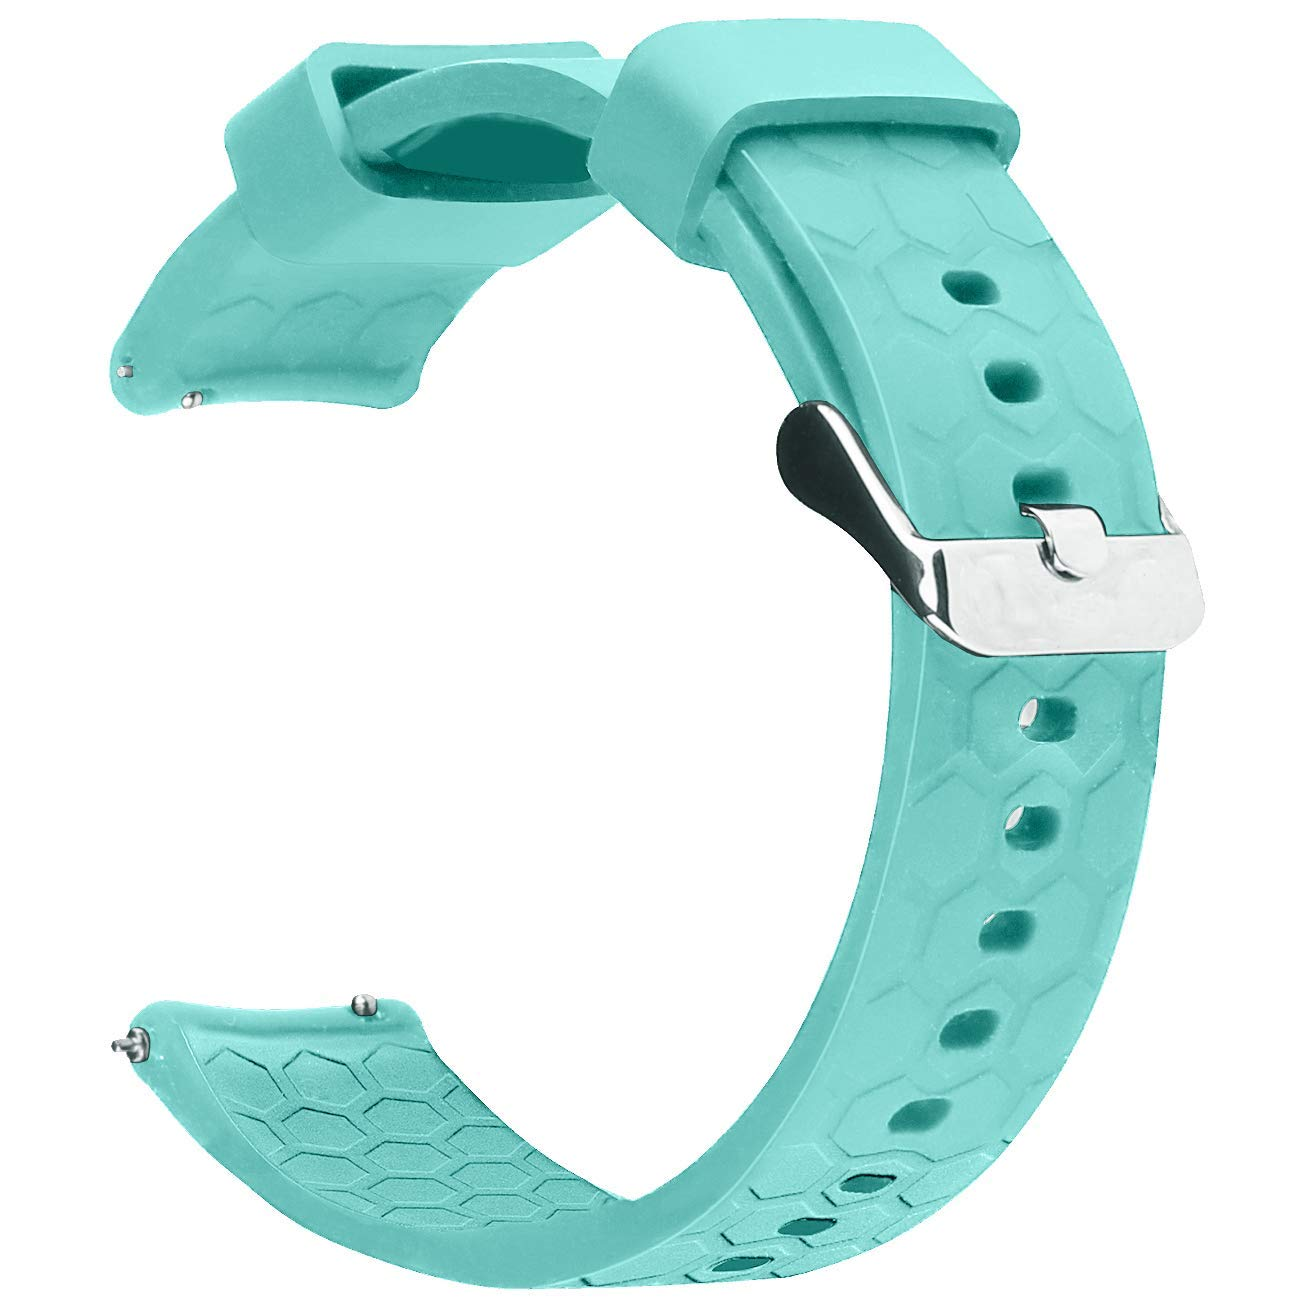 Amazon.com: ECSEM 20mm Width Replacement Silicone Bands ...